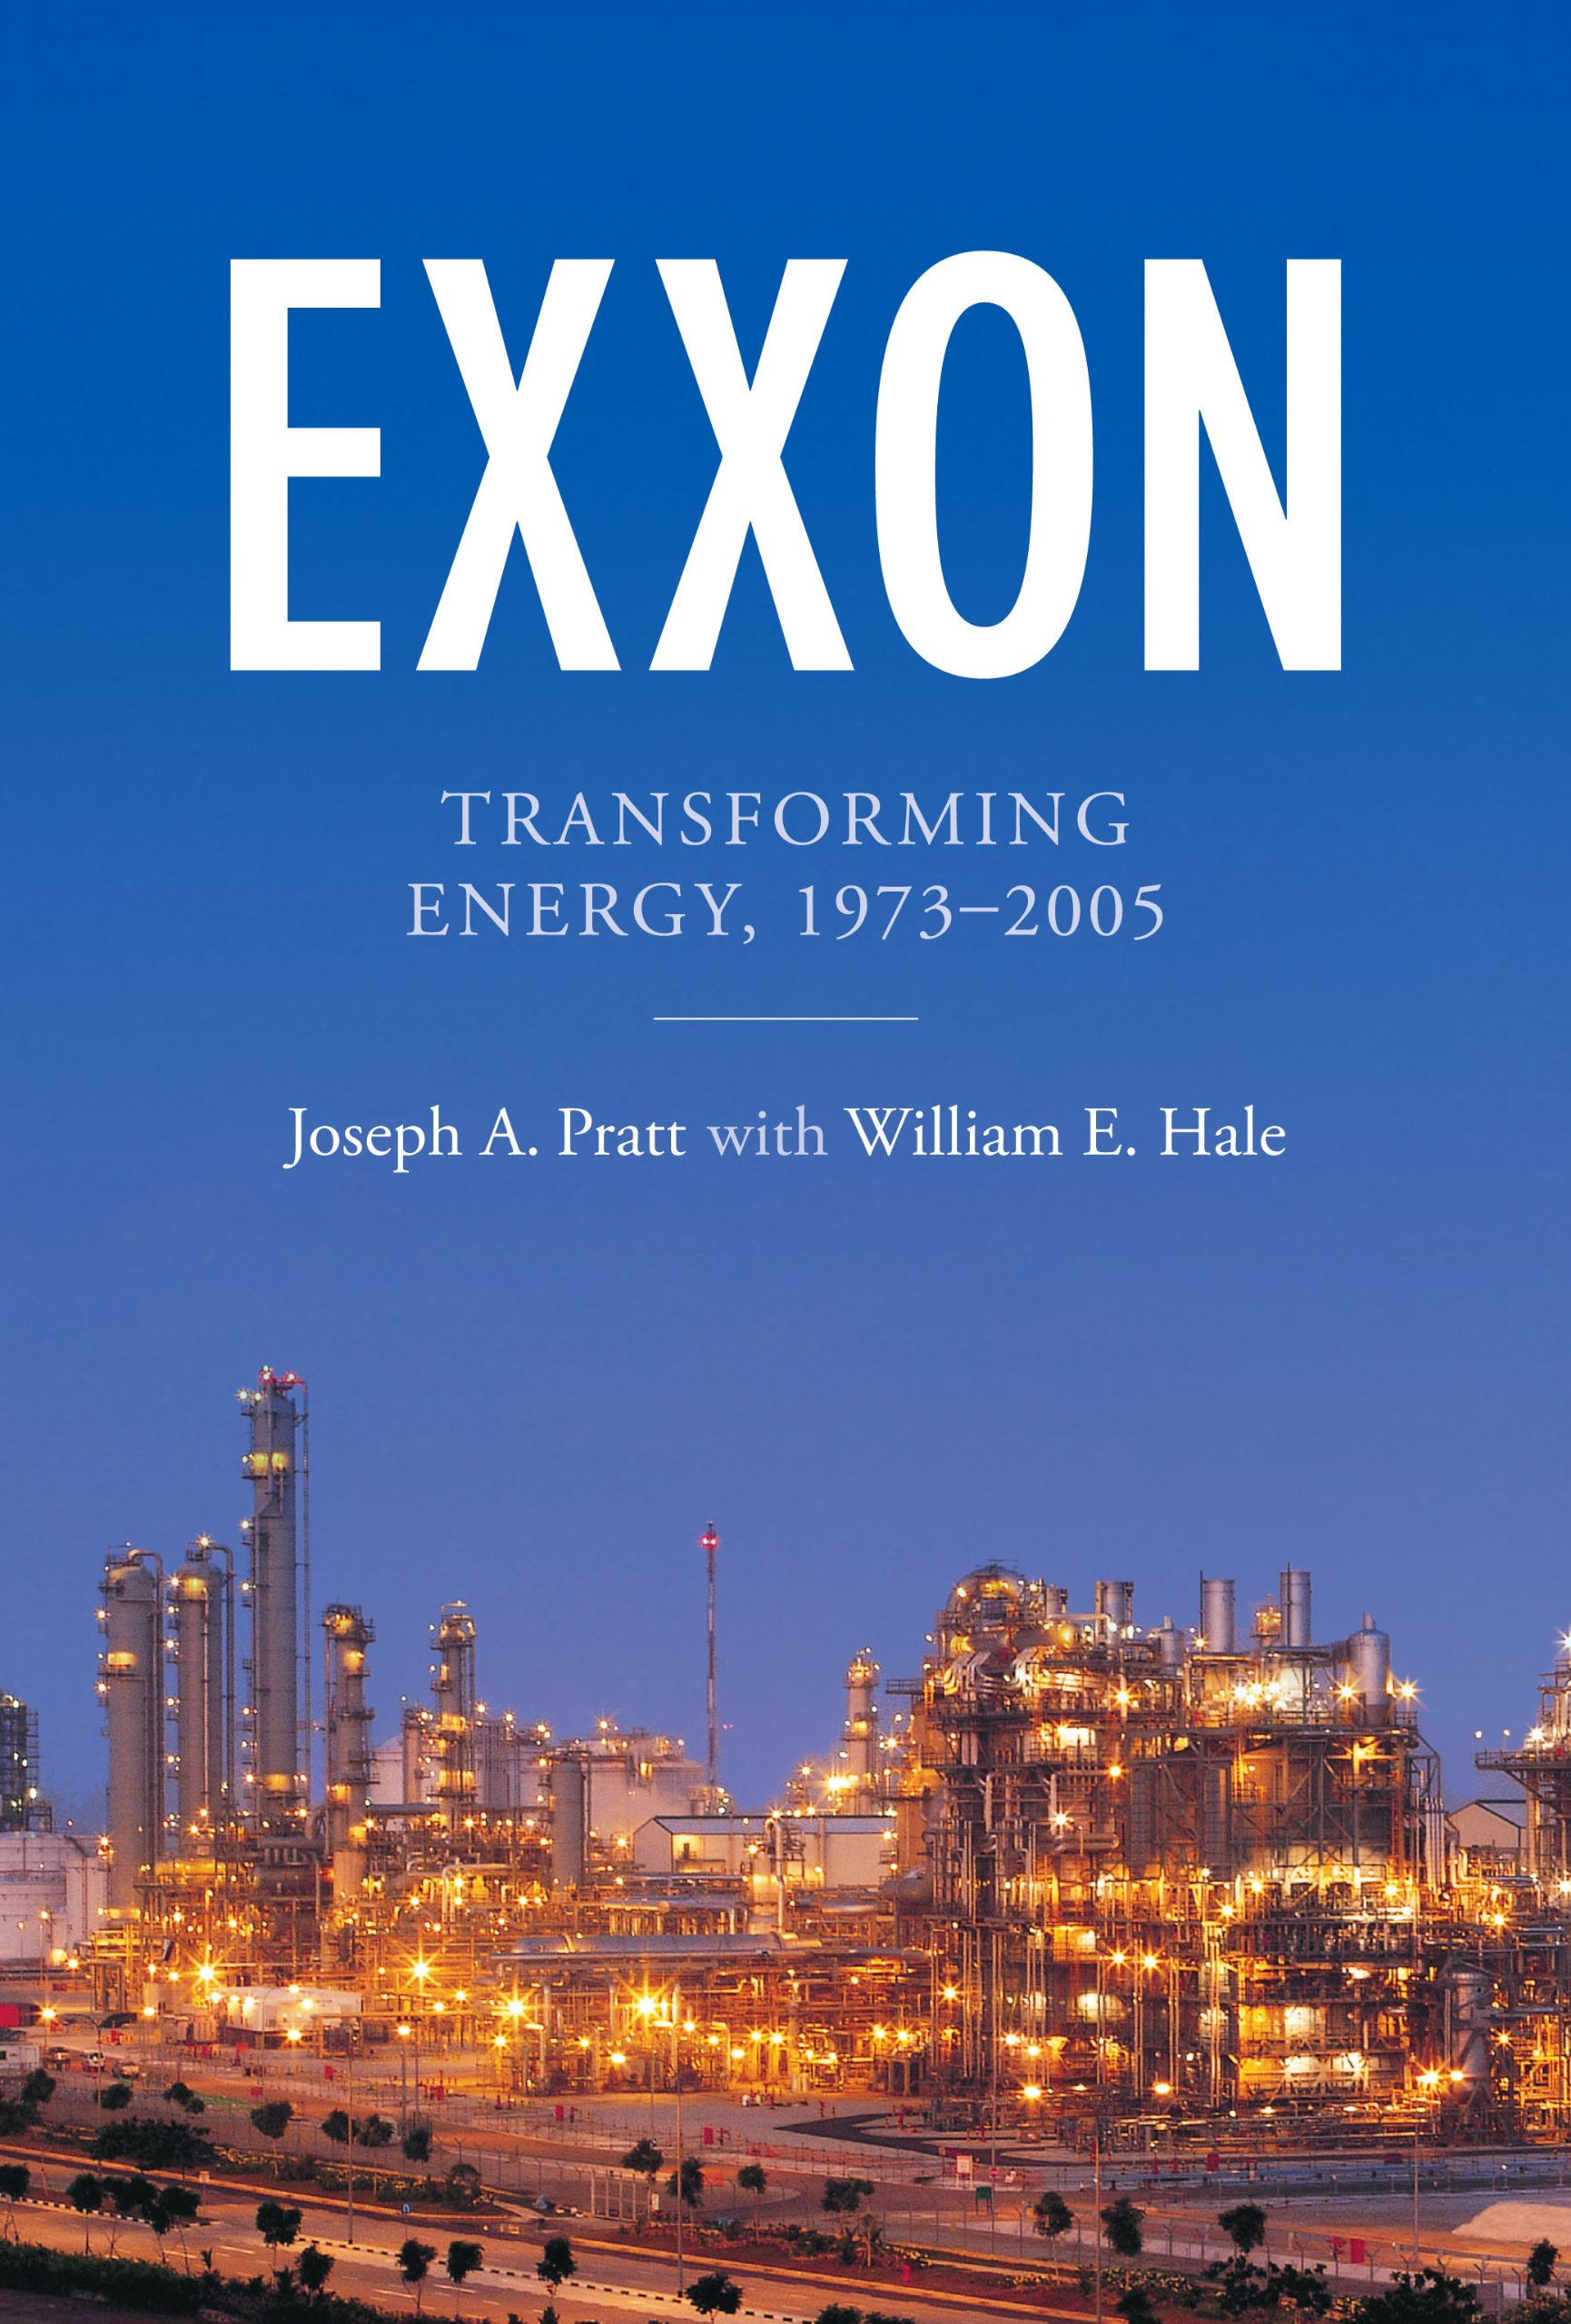 exxon transforming energy 1973 2005 joseph a pratt william e